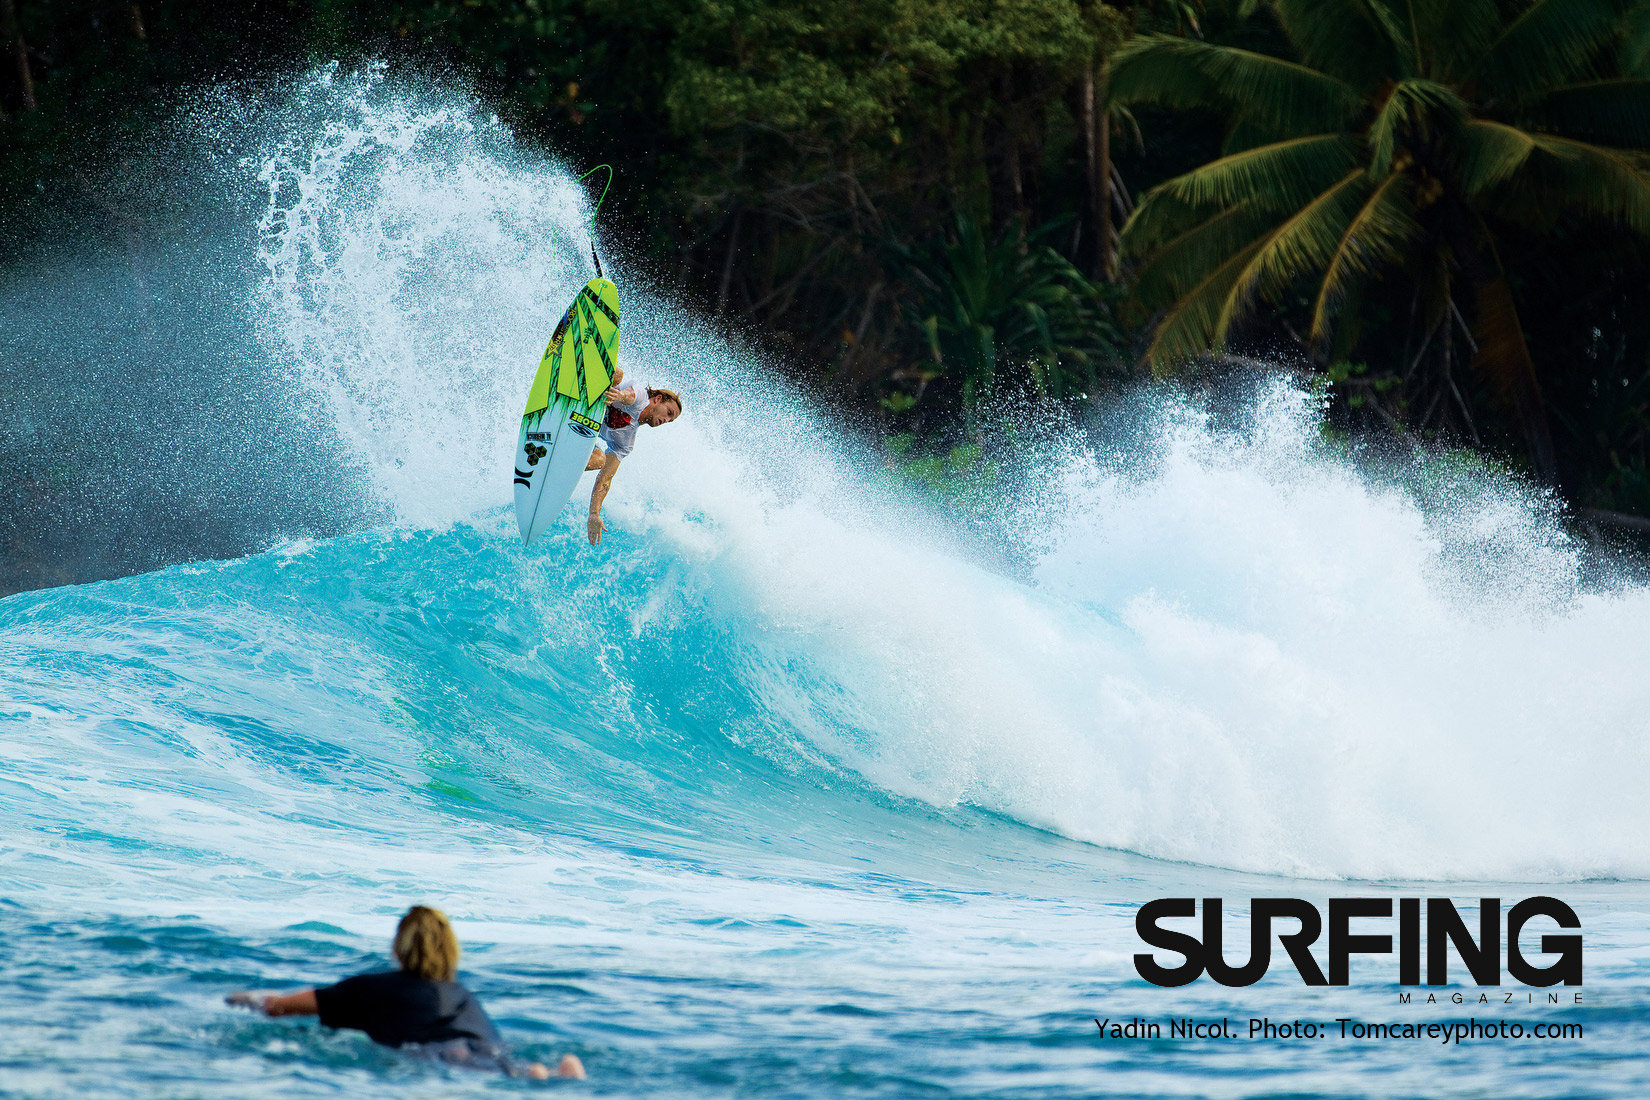 November 2011 Issue Wallpaper SURFING Magazine 1650x1100